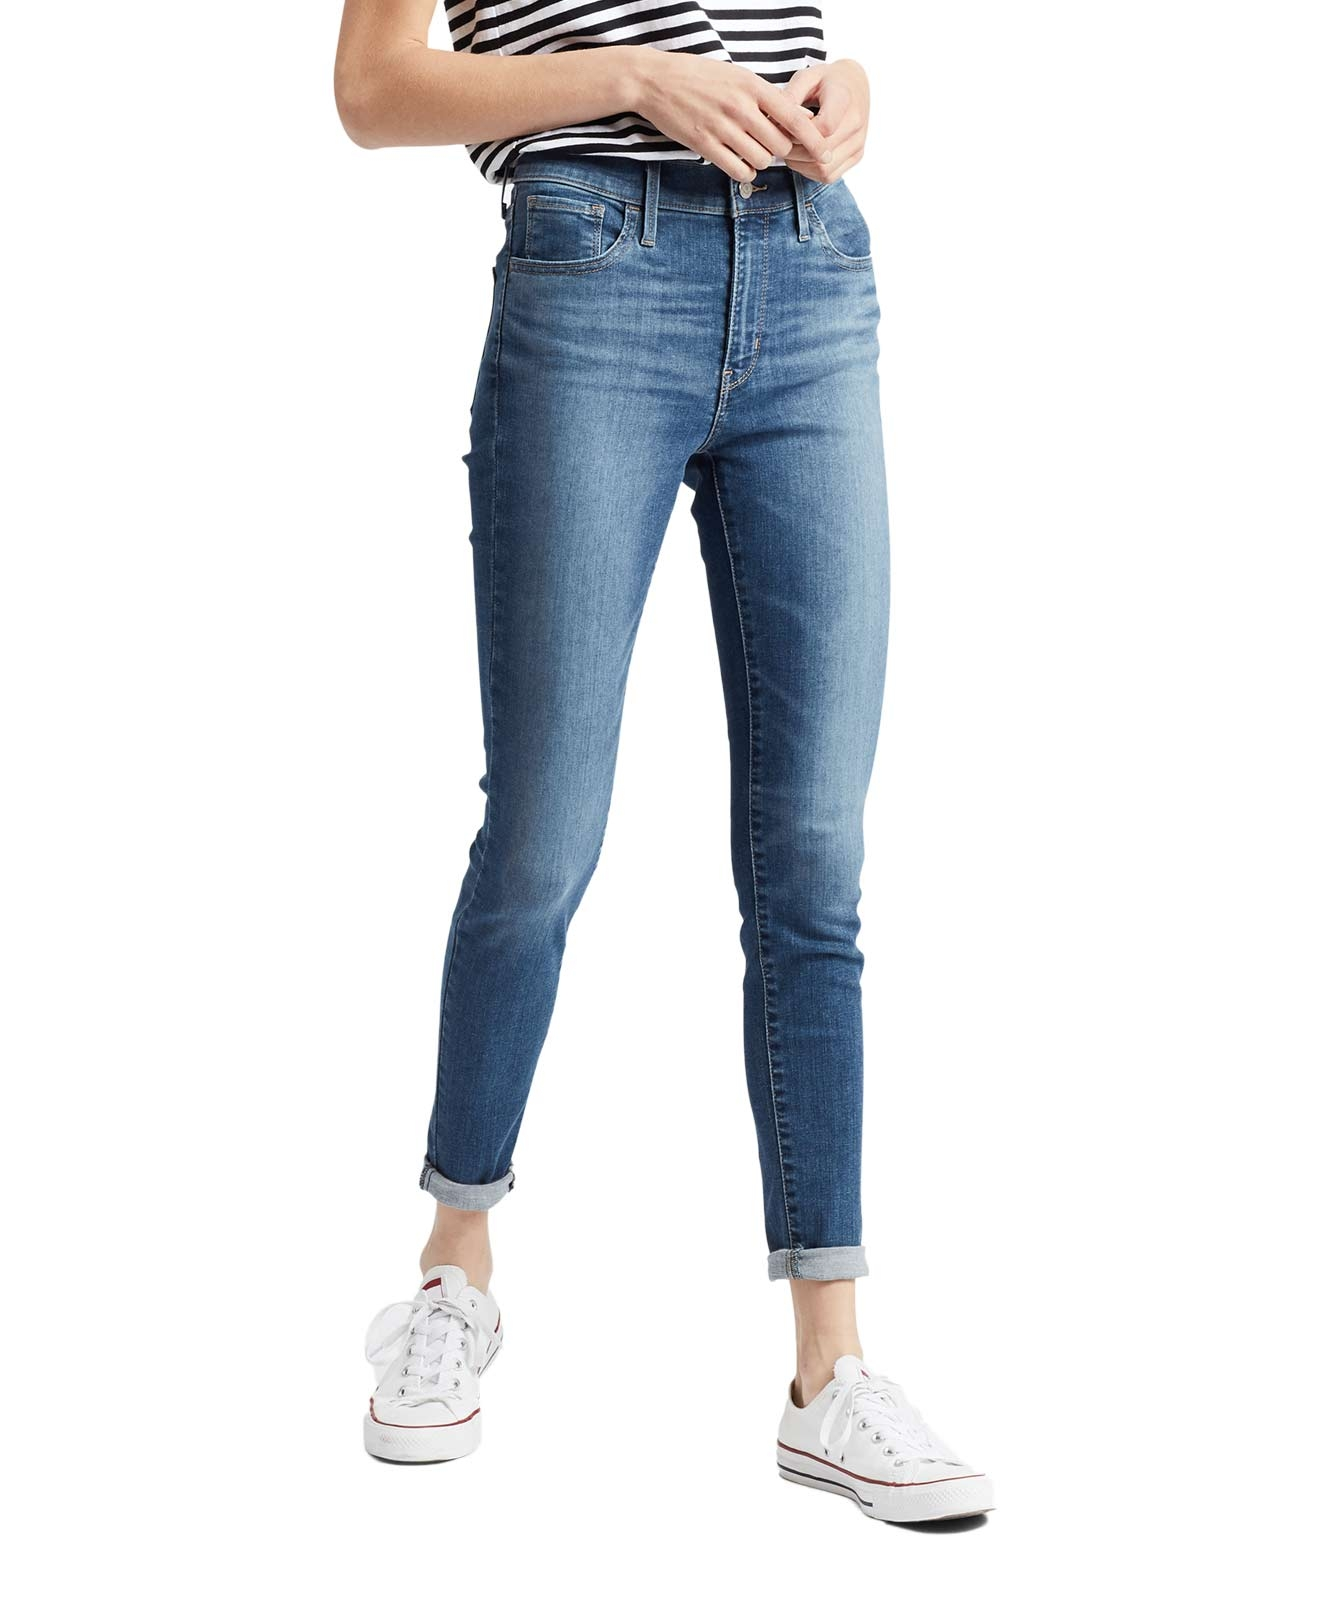 Hosen - Levis 720 hautenge High Waisted Skinny Jeans in Love Ride  - Onlineshop Jeans Meile